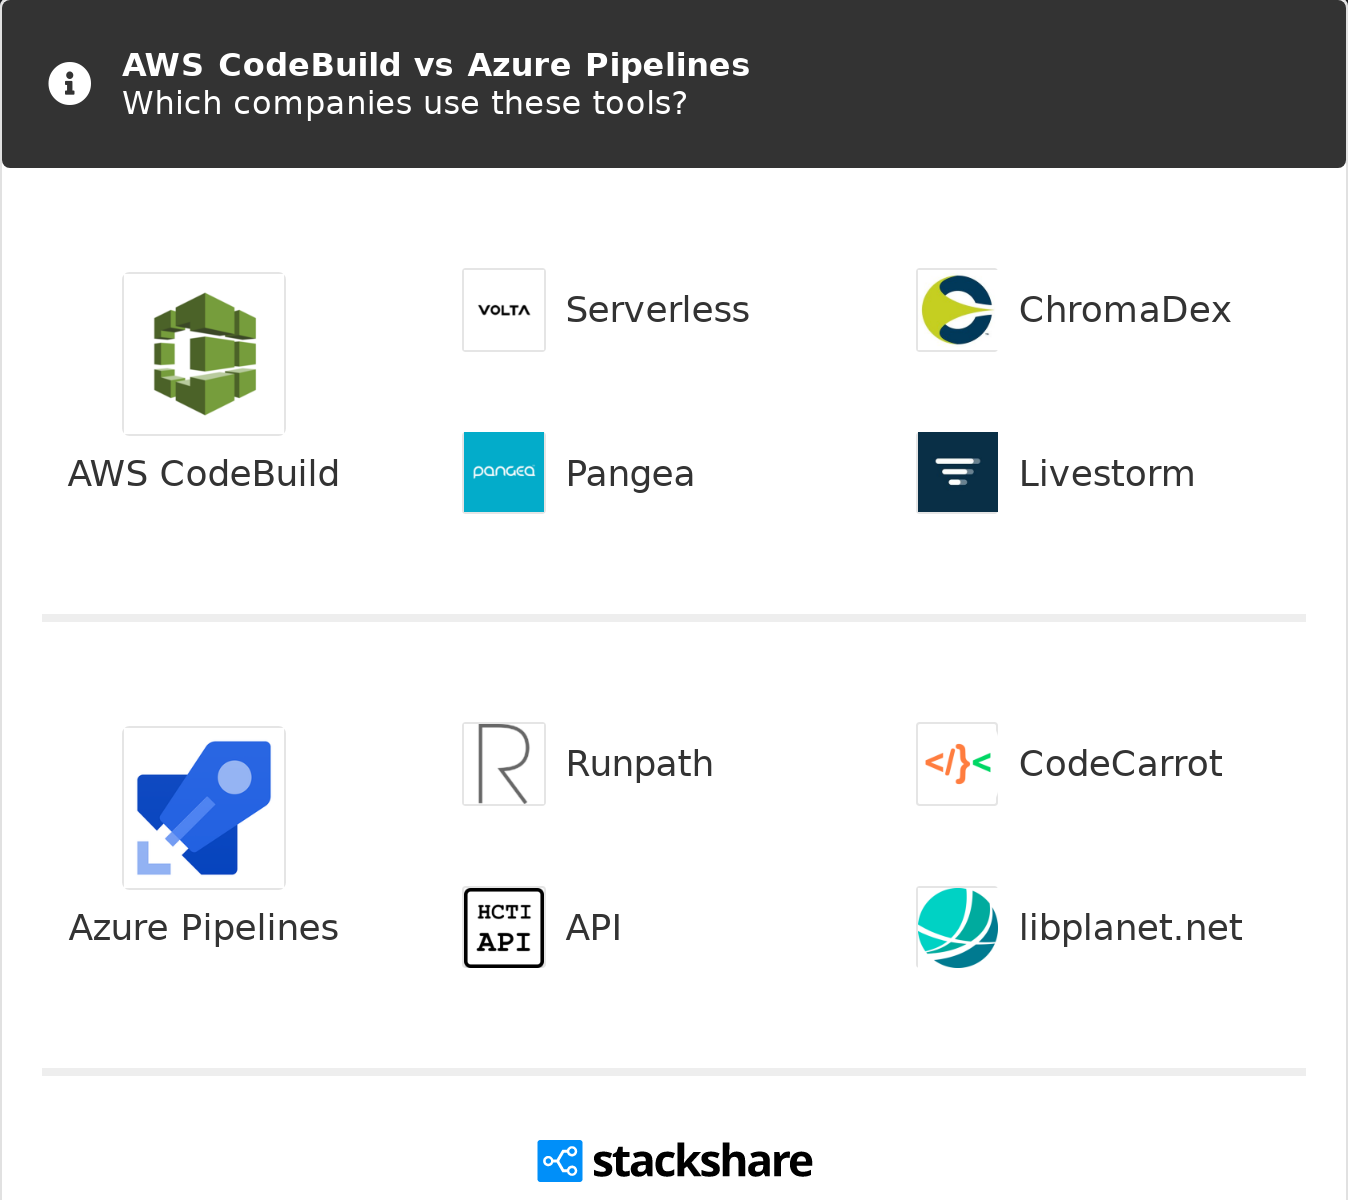 AWS CodeBuild vs Azure Pipelines | What are the differences?